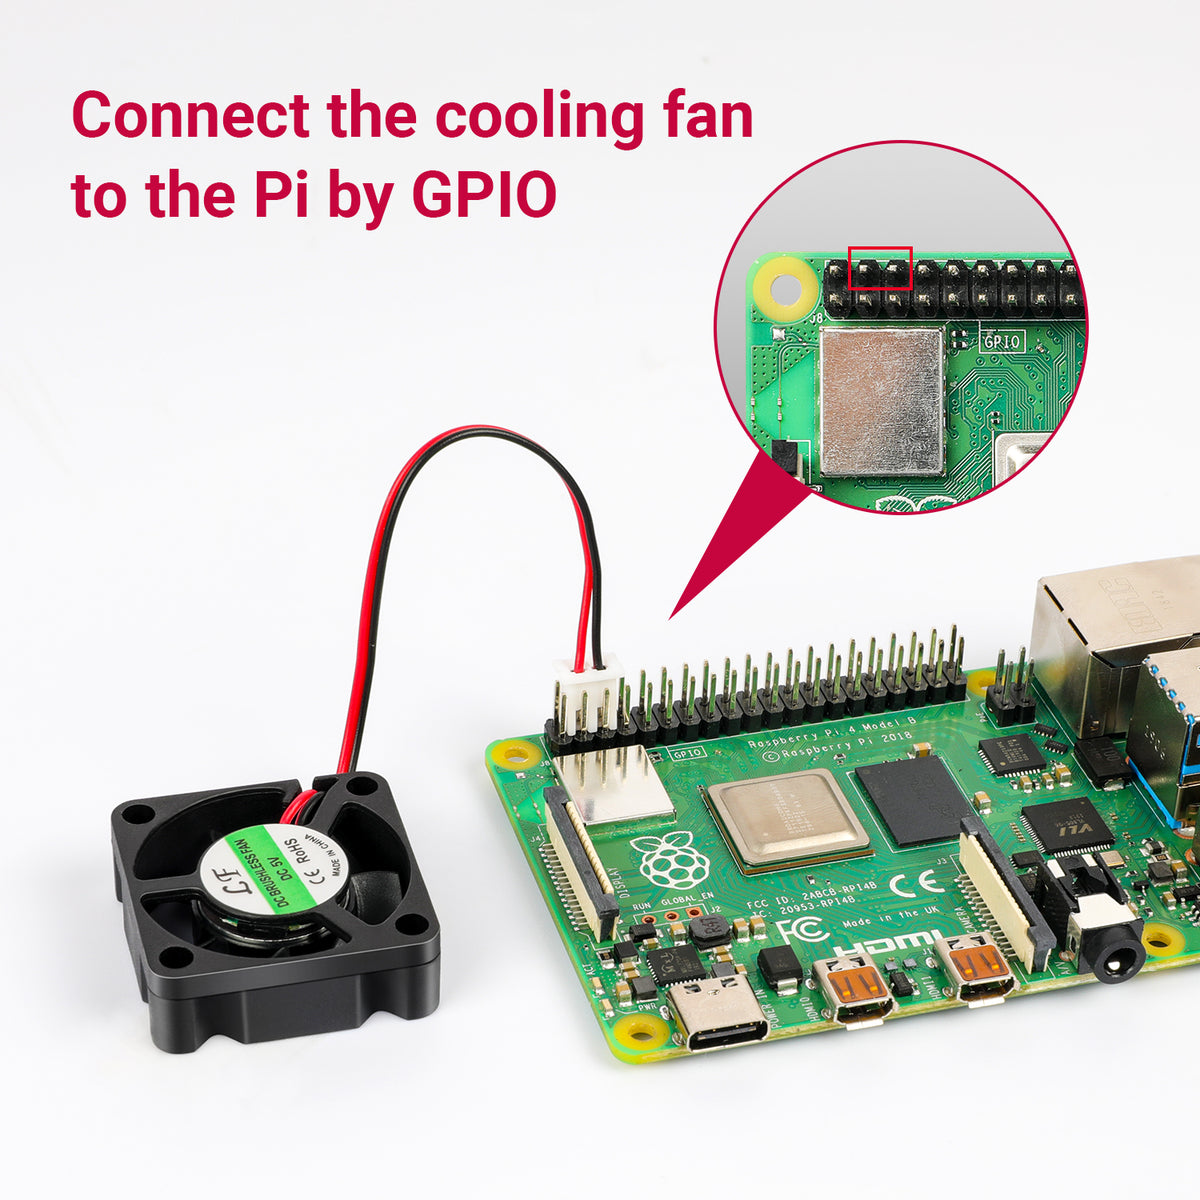 Connect the cooling fan to the Pi by GPIO